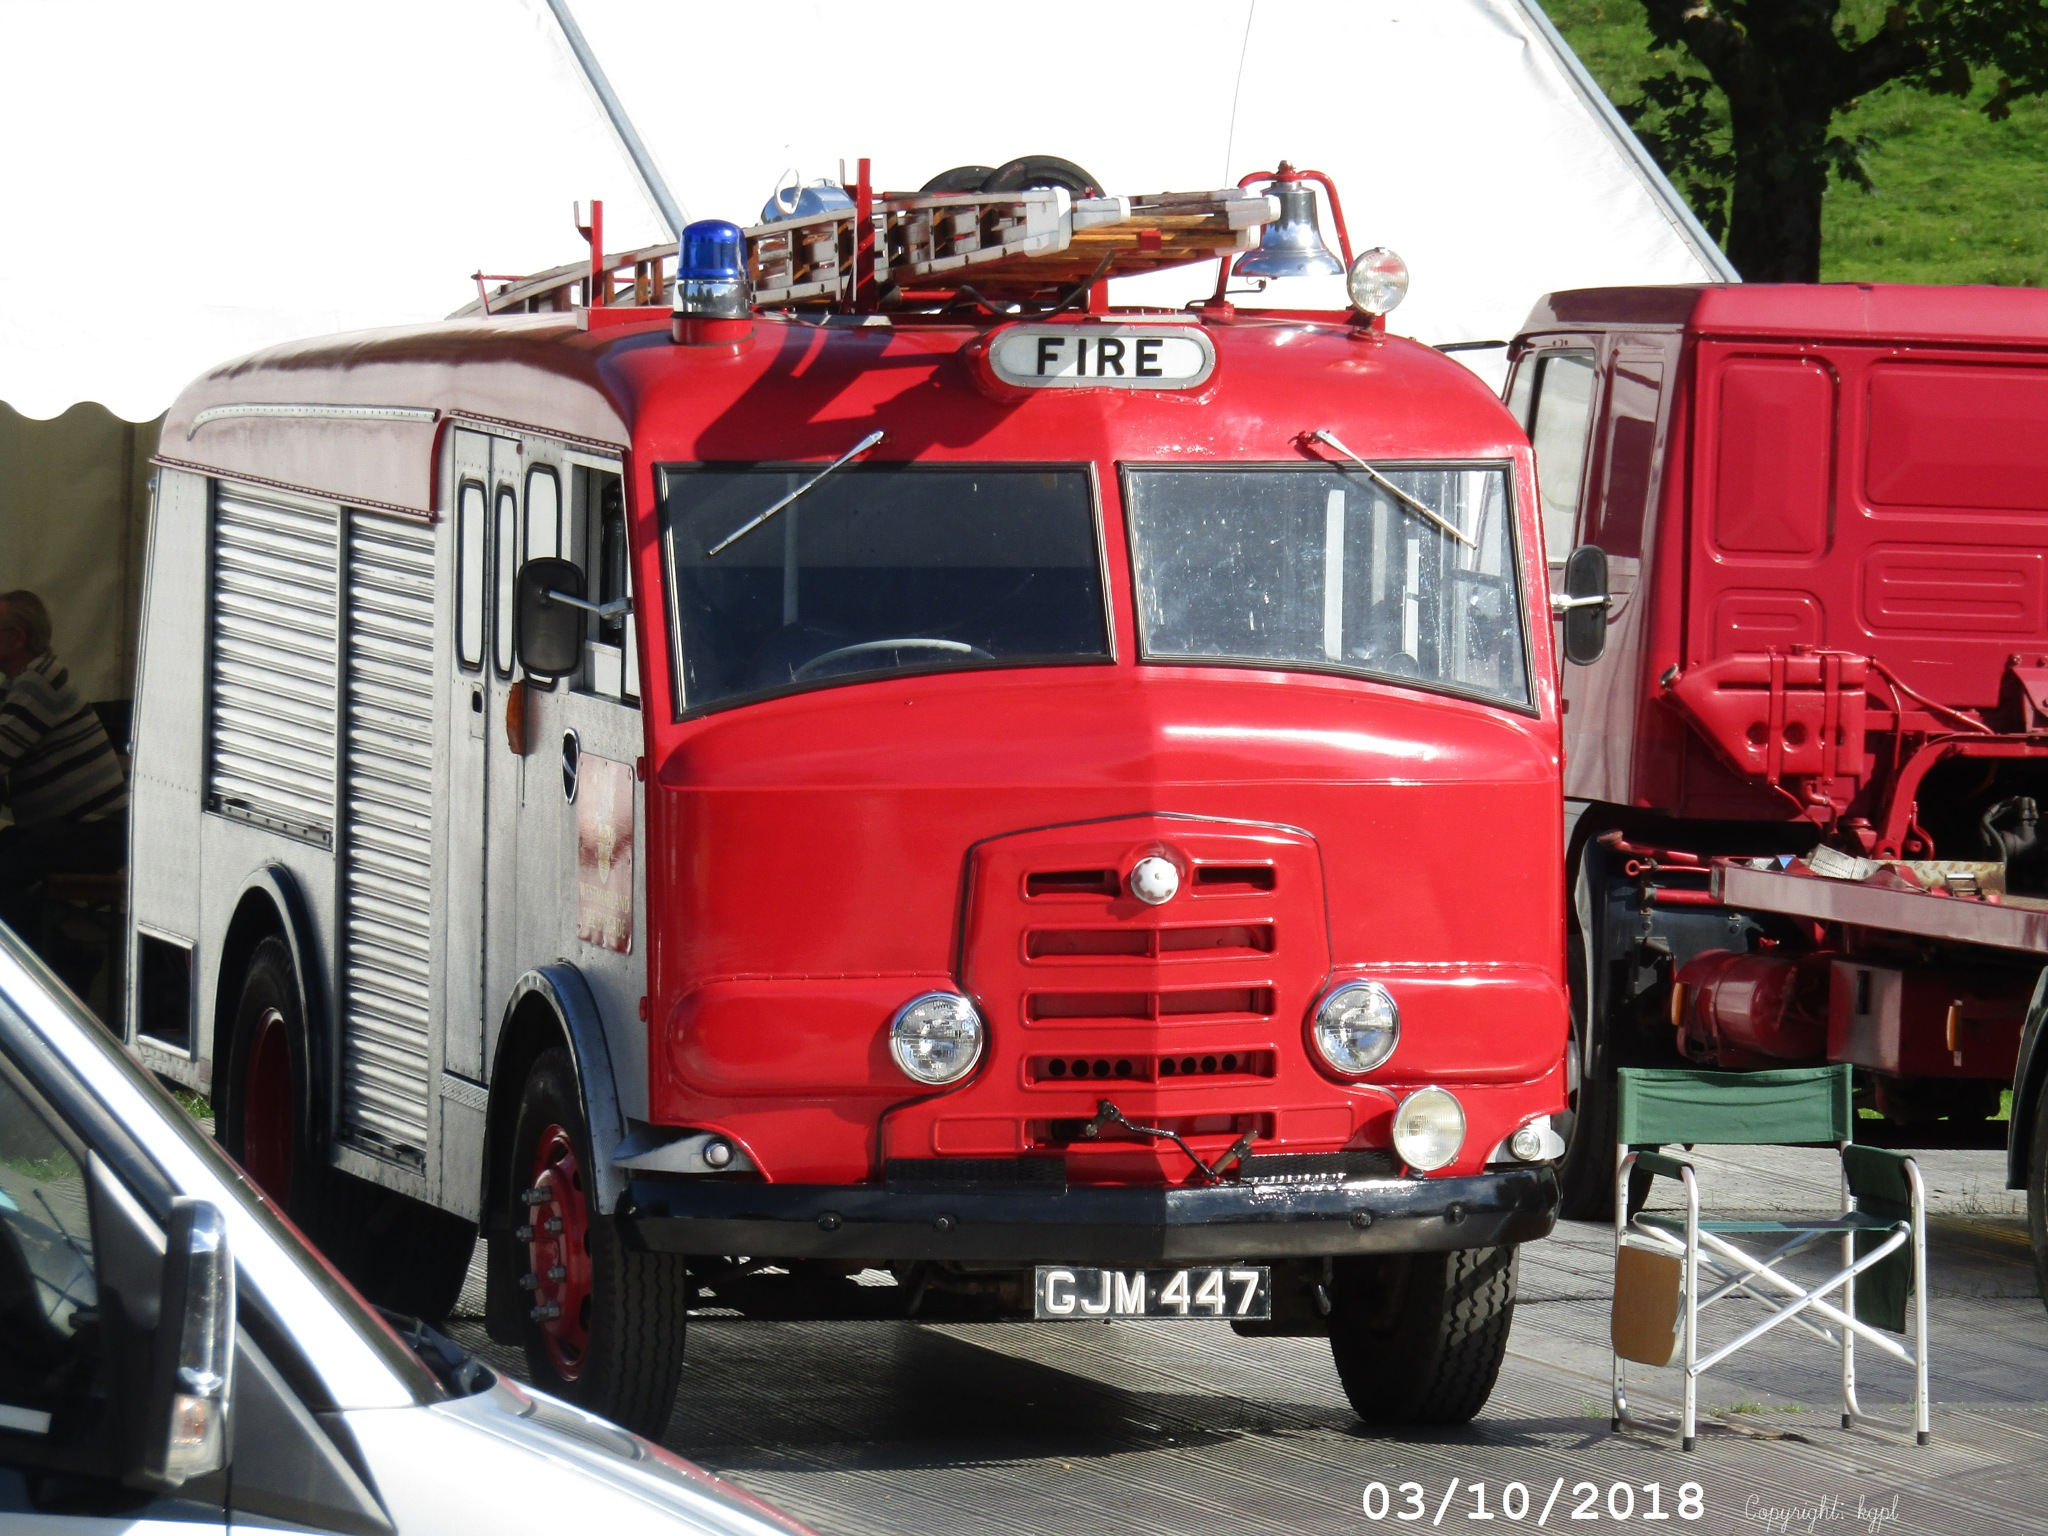 1960's fire engine by kgpl